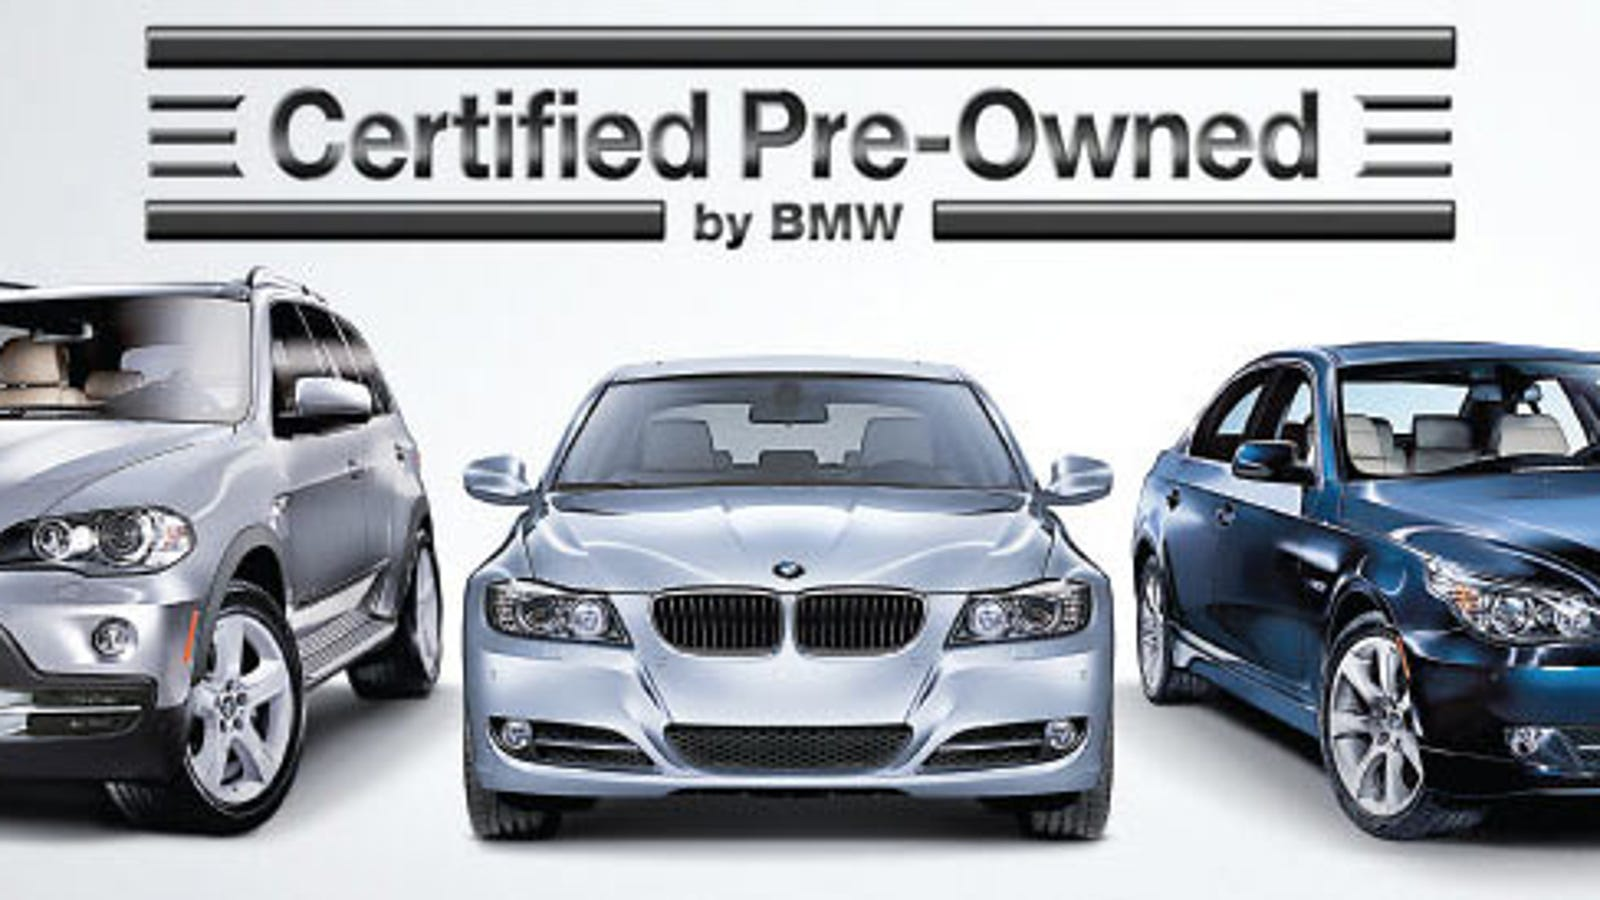 Bmw Certified Pre Owned >> Bmw Will Un Certify Your Cpo Car If You Don T Purchase From Bmw